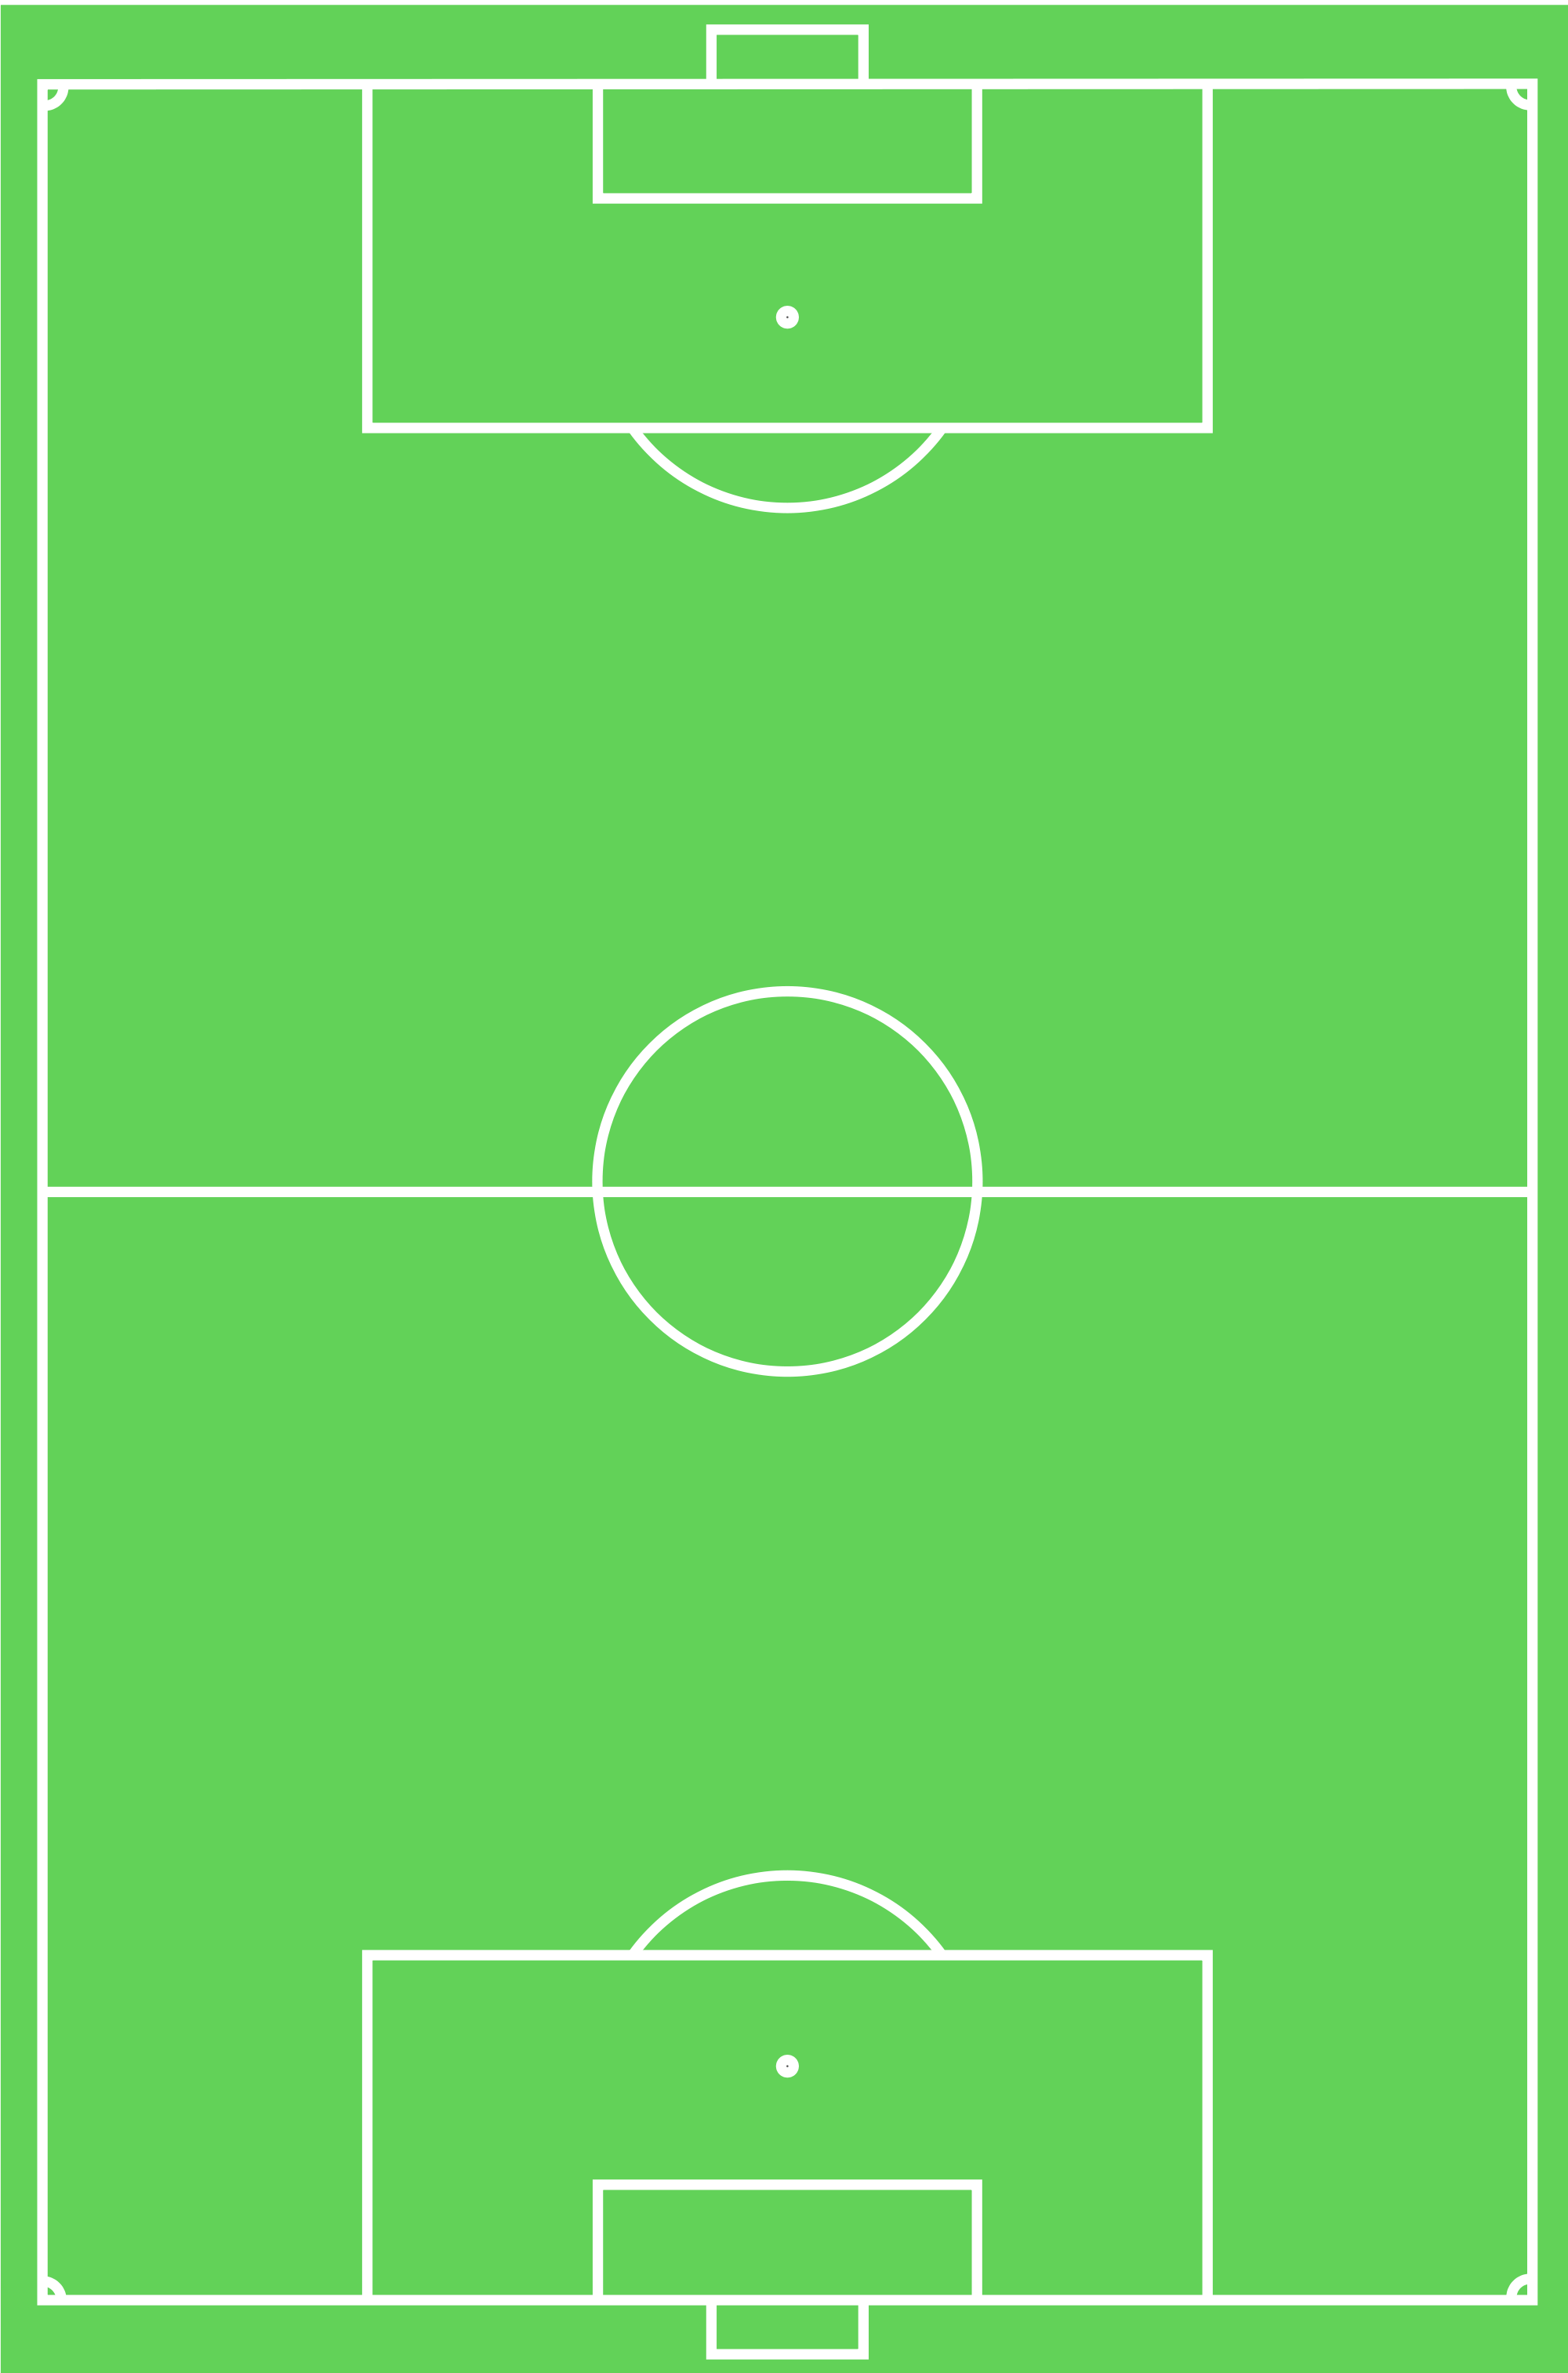 Football field banner clipart. Soccer layout correct dimensions